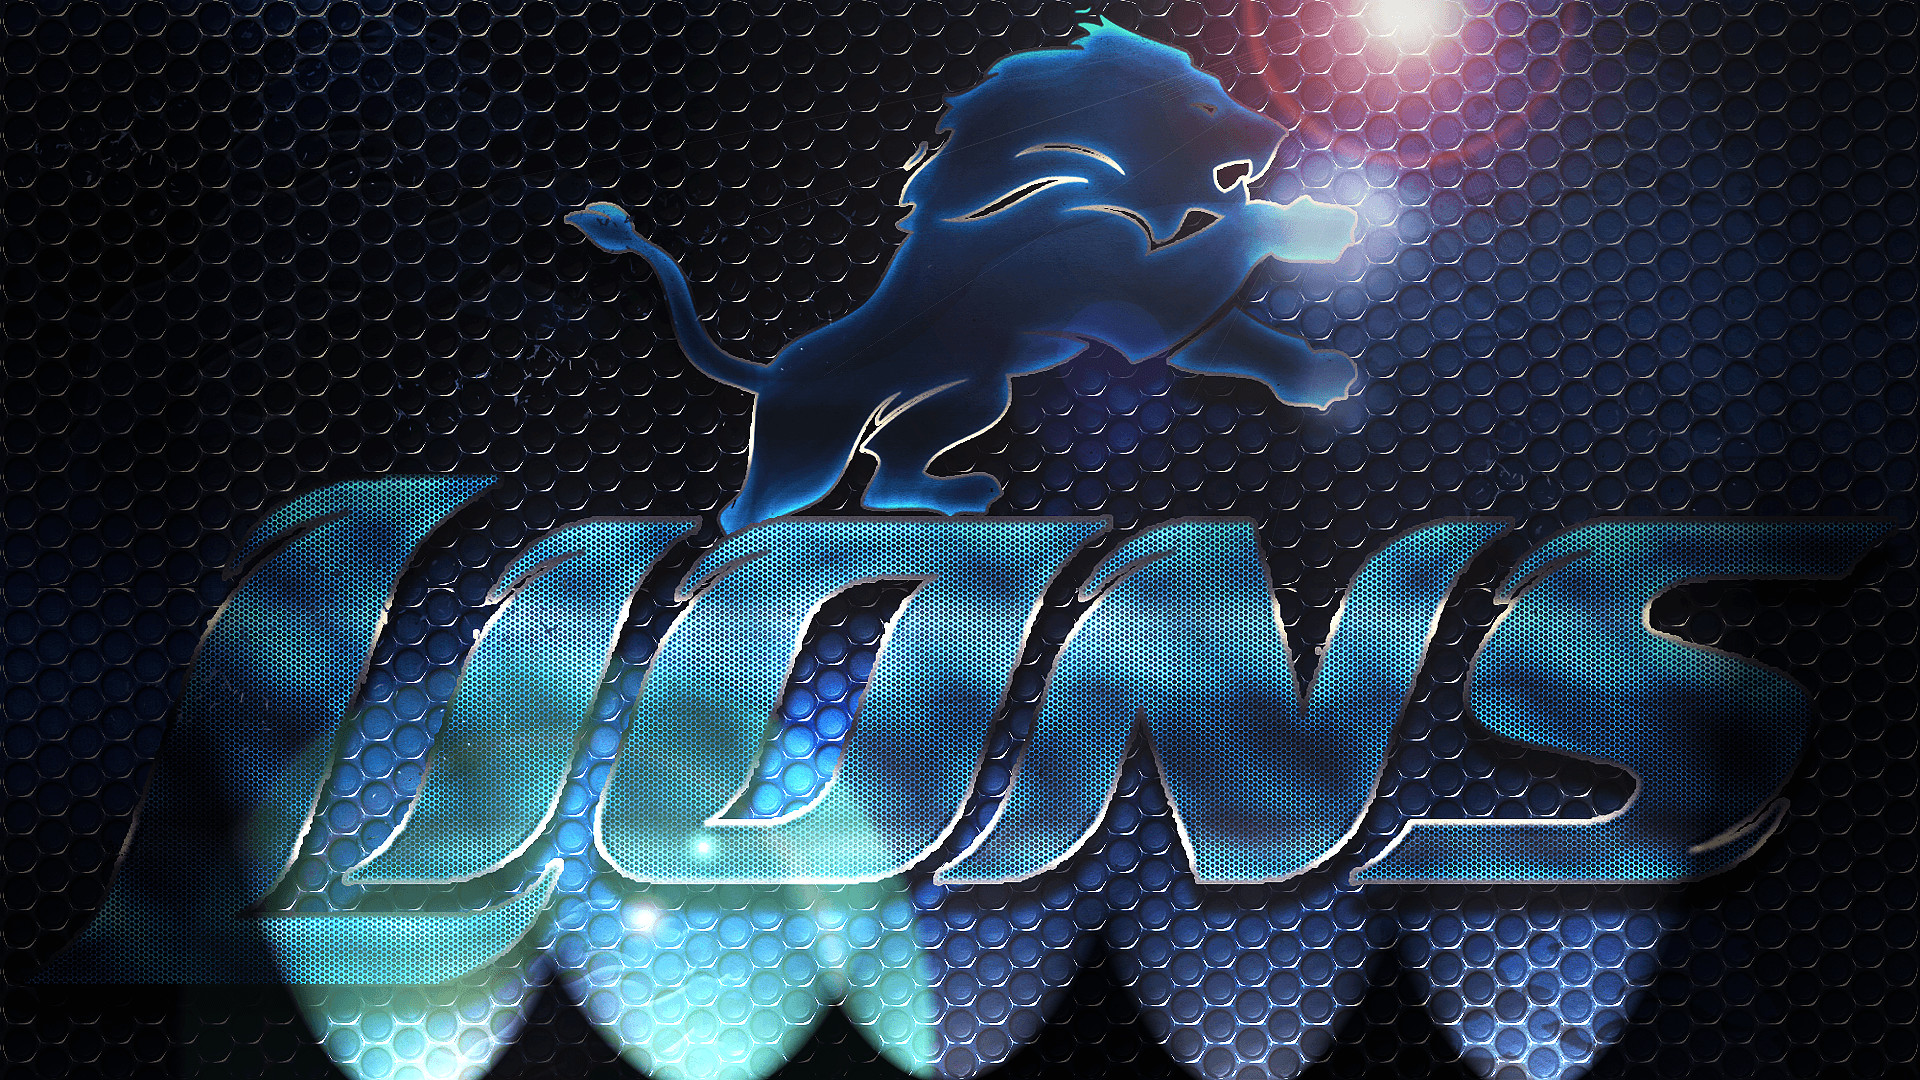 Hd Detroit Lions Wallpaper - Logo Wallpaper Detroit Lions , HD Wallpaper & Backgrounds